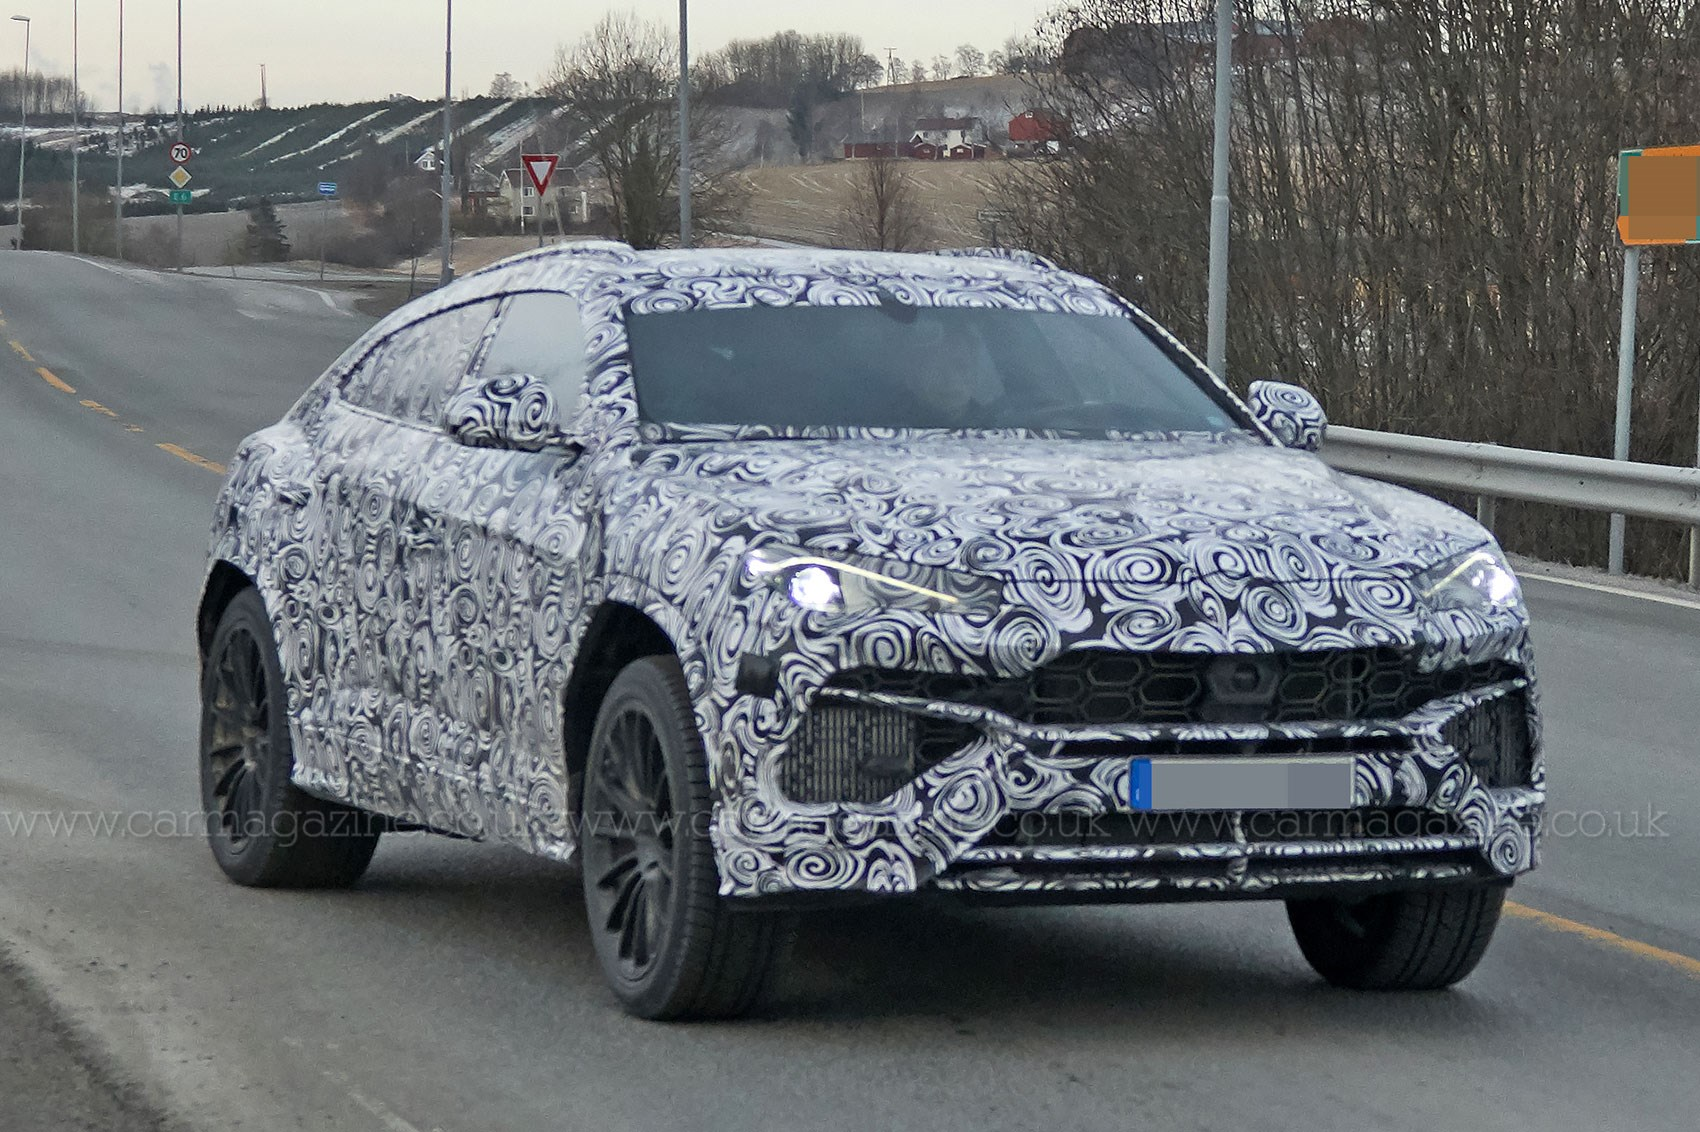 New Lamborghini Urus SUV spotted being thrashed around the 'Ring ...